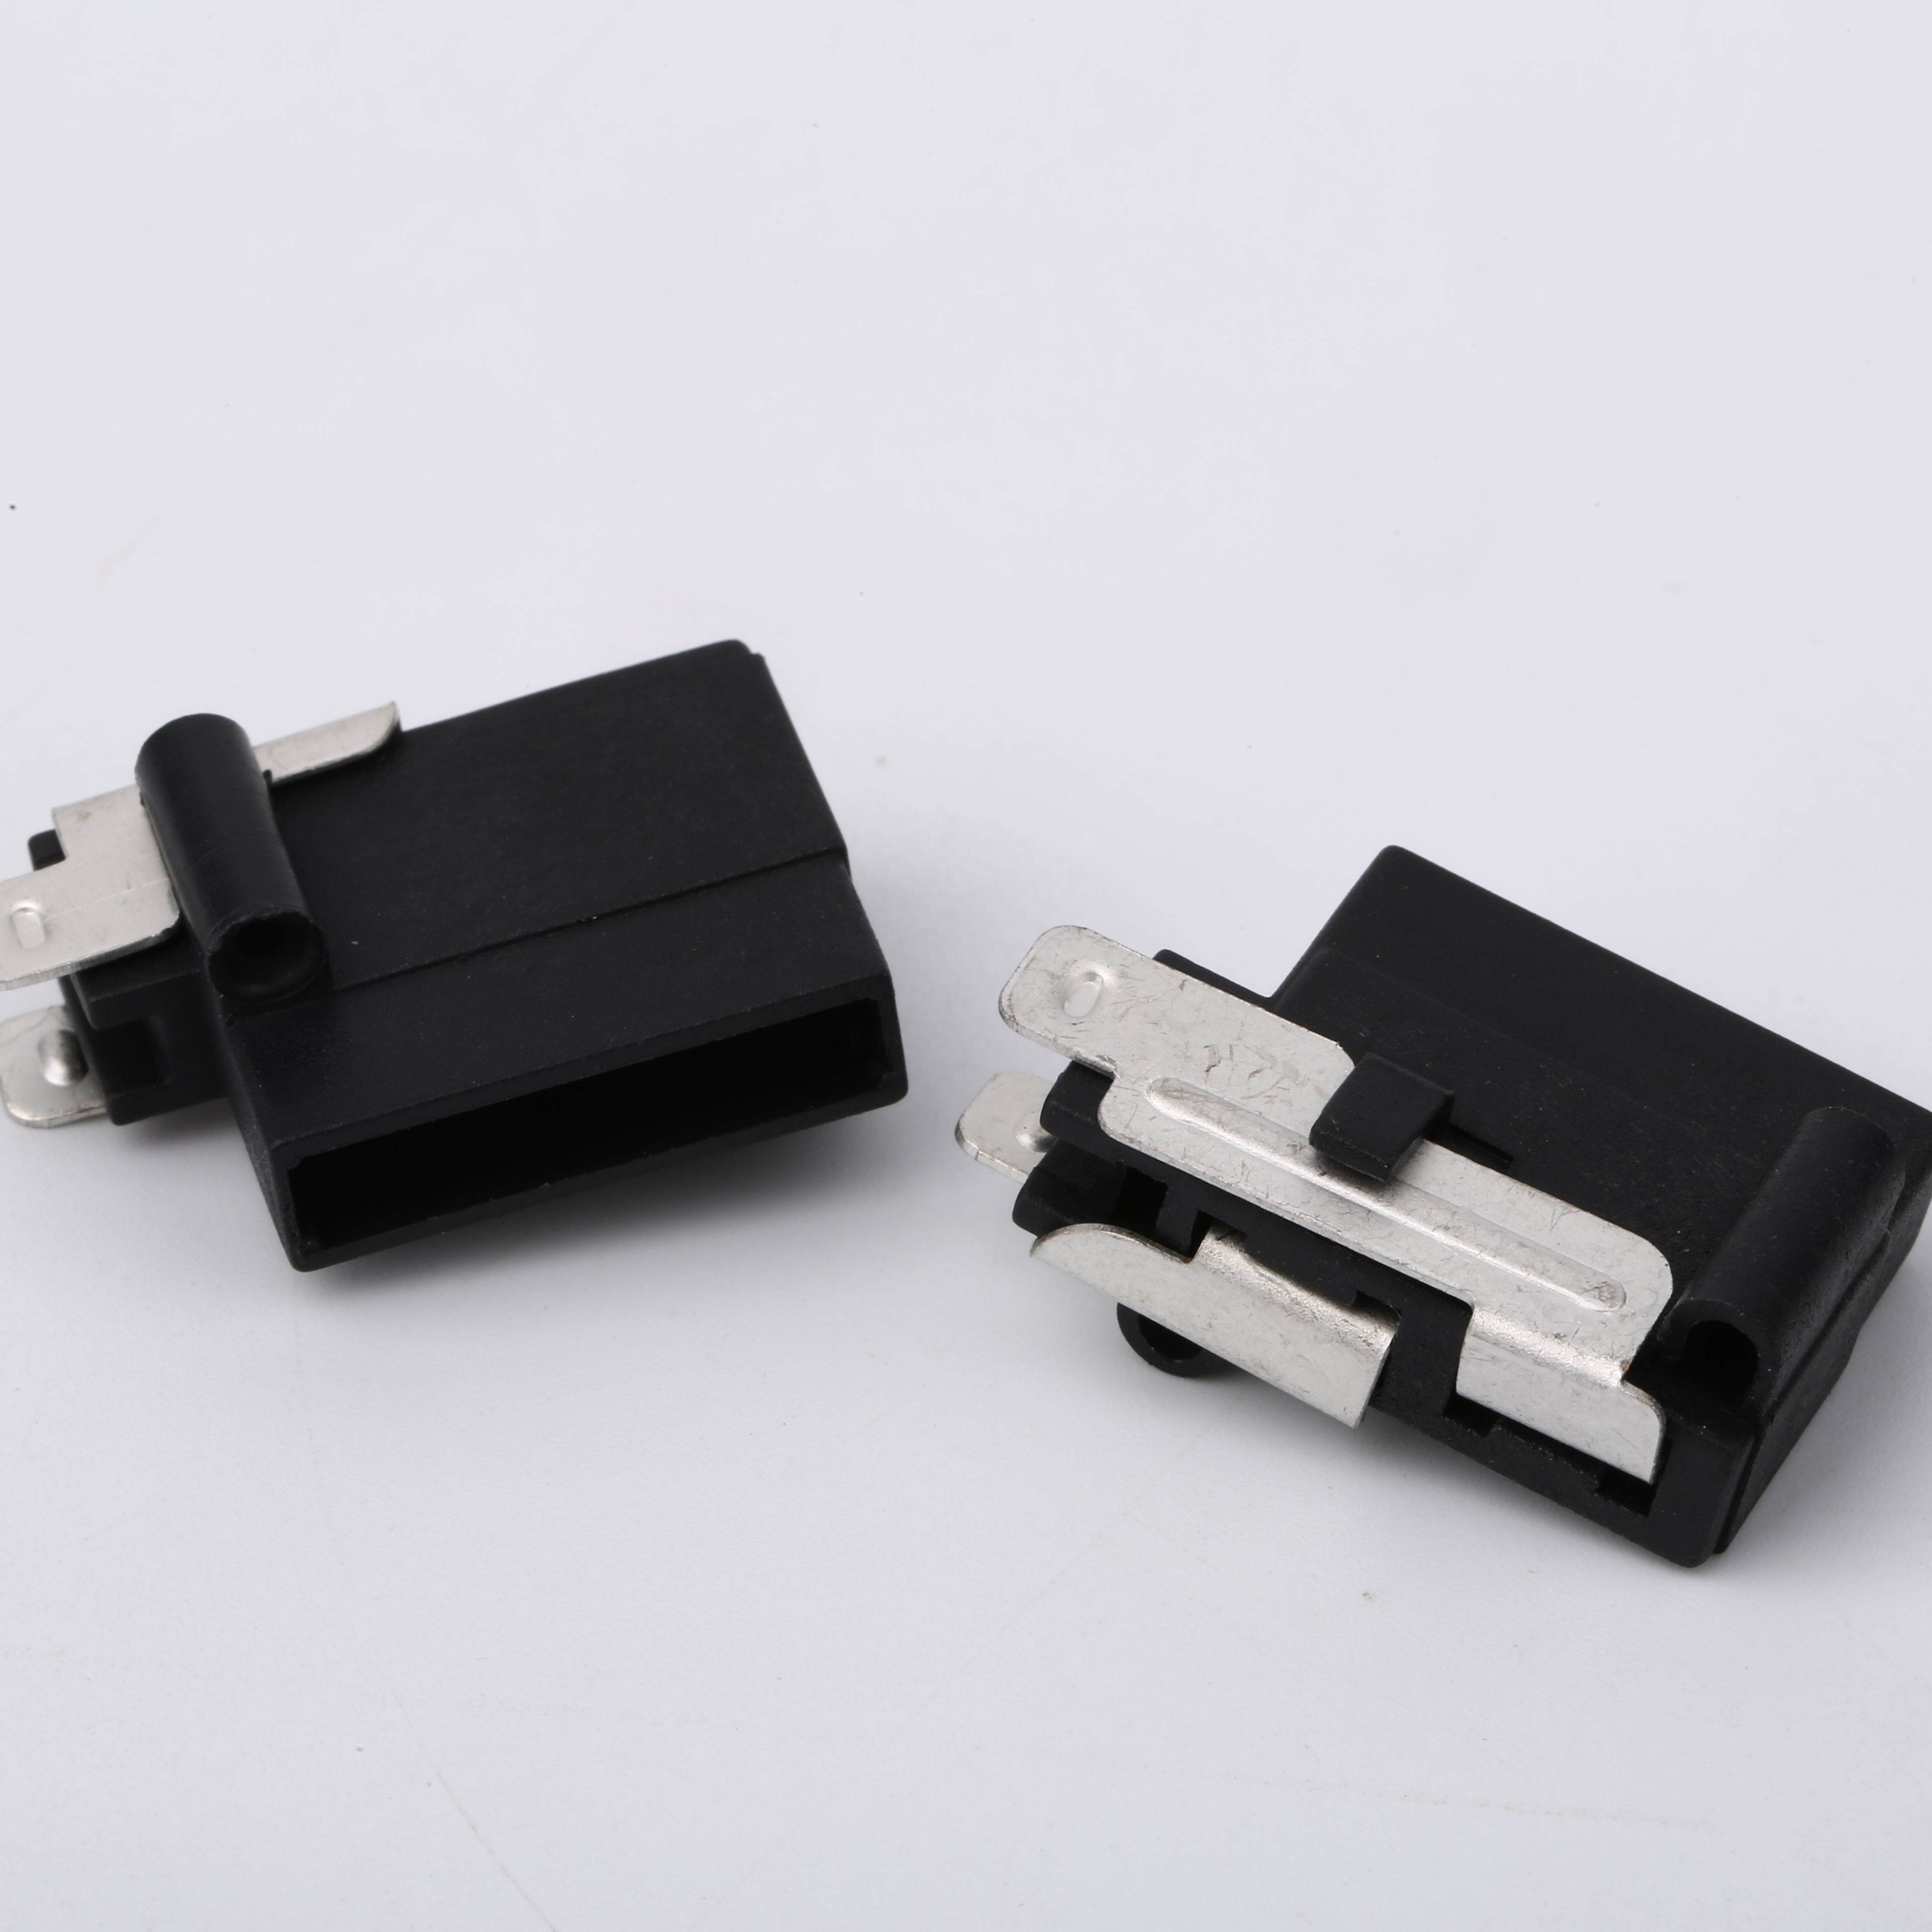 Professional Manufacturer Automotive Panel Mount Fuse Holder Block,Fuse  Clip For Cars - Buy Automotive Fuse Box,Panel Mounted Fuse Block,Auto Fuse  Product on Alibaba.comAlibaba.com